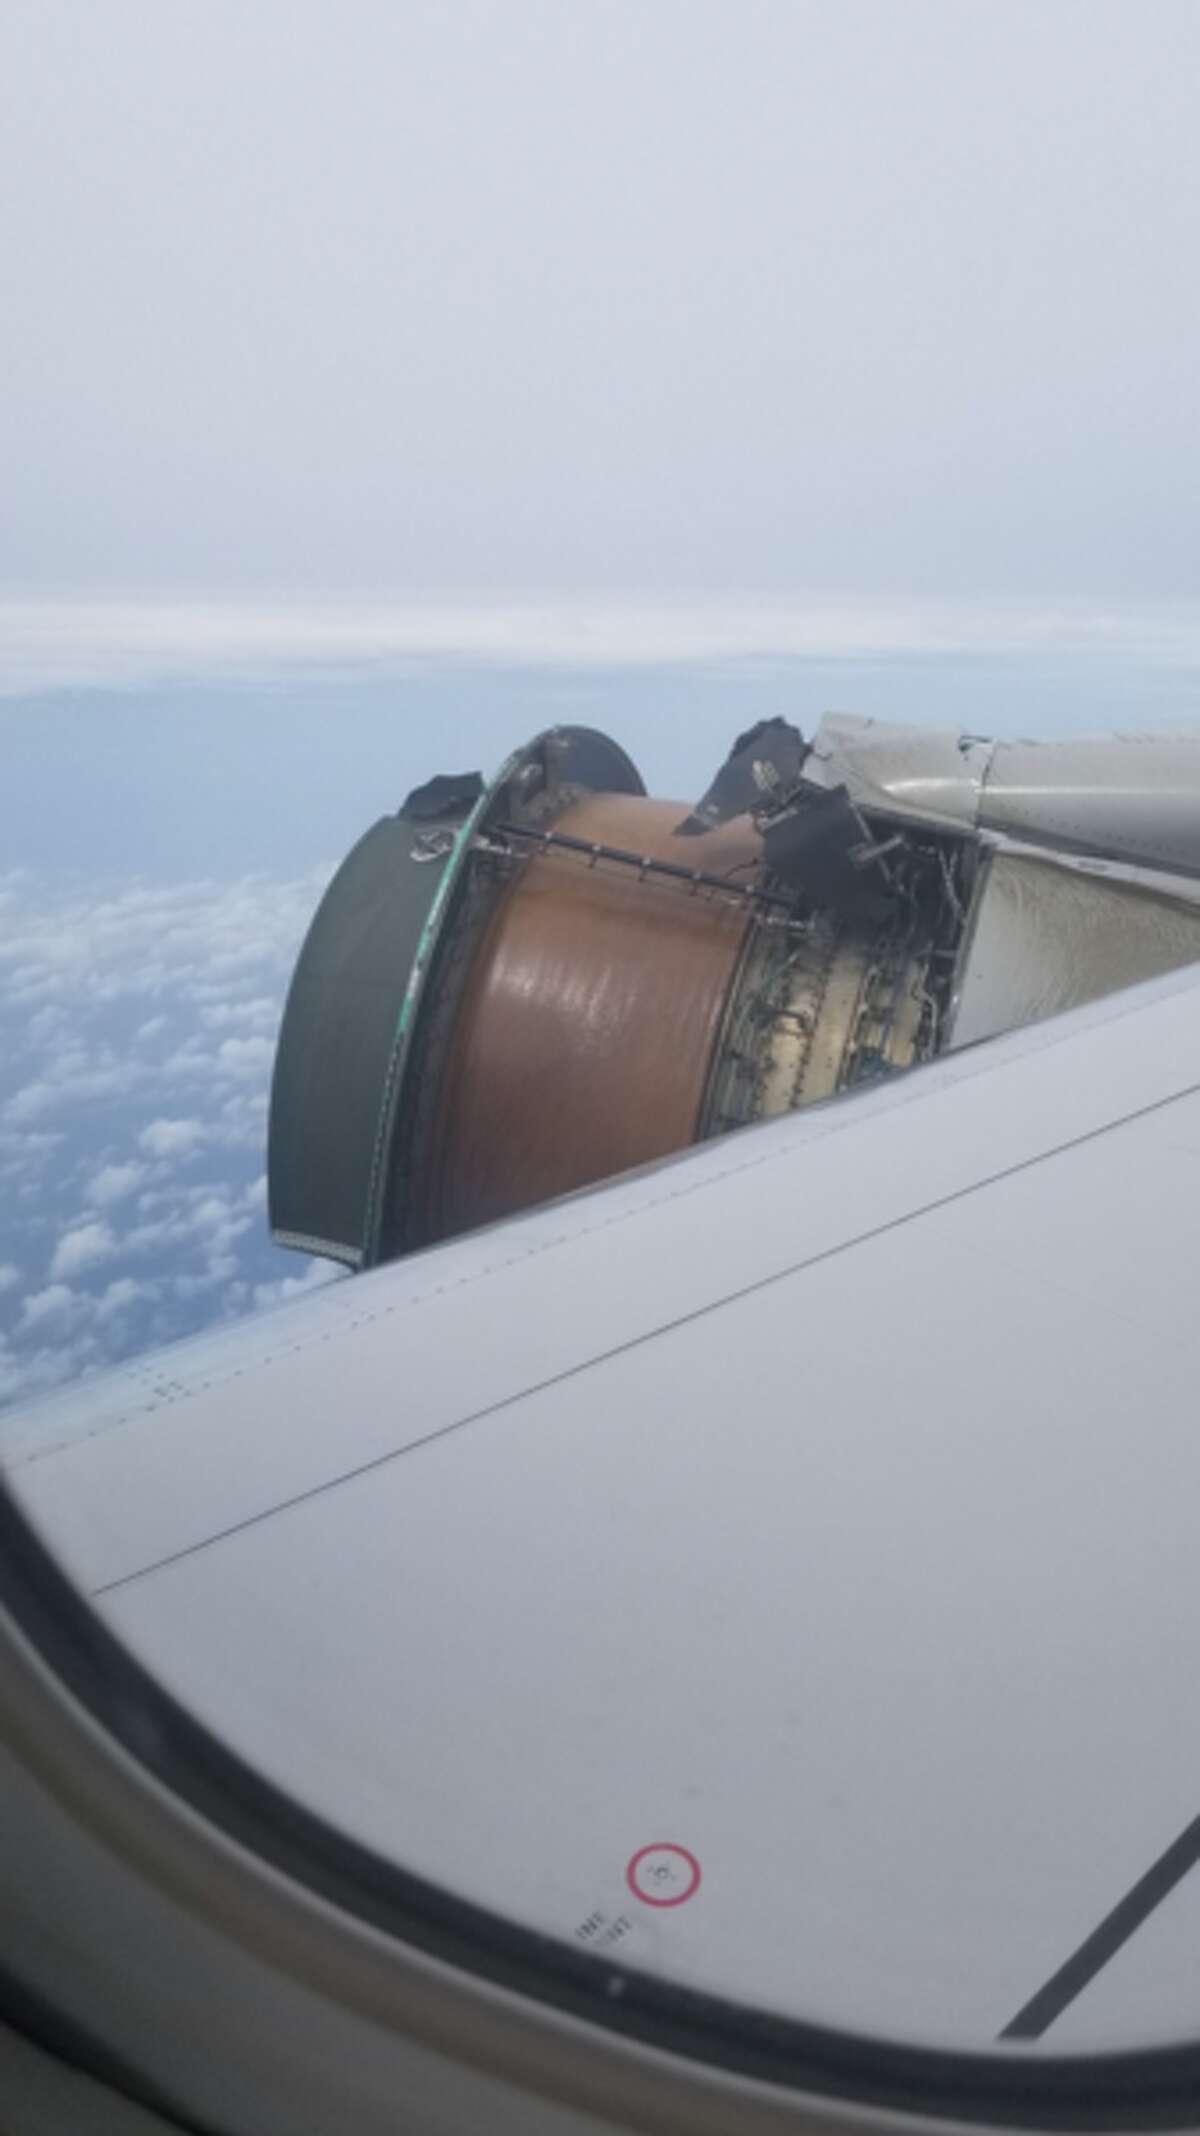 Passenger Maria Falaschi took these photos of an exposed starboard-side engine aboard United Airlines flight 1175 from San Francisco to Honolulu on Tuesday, Feb. 13.